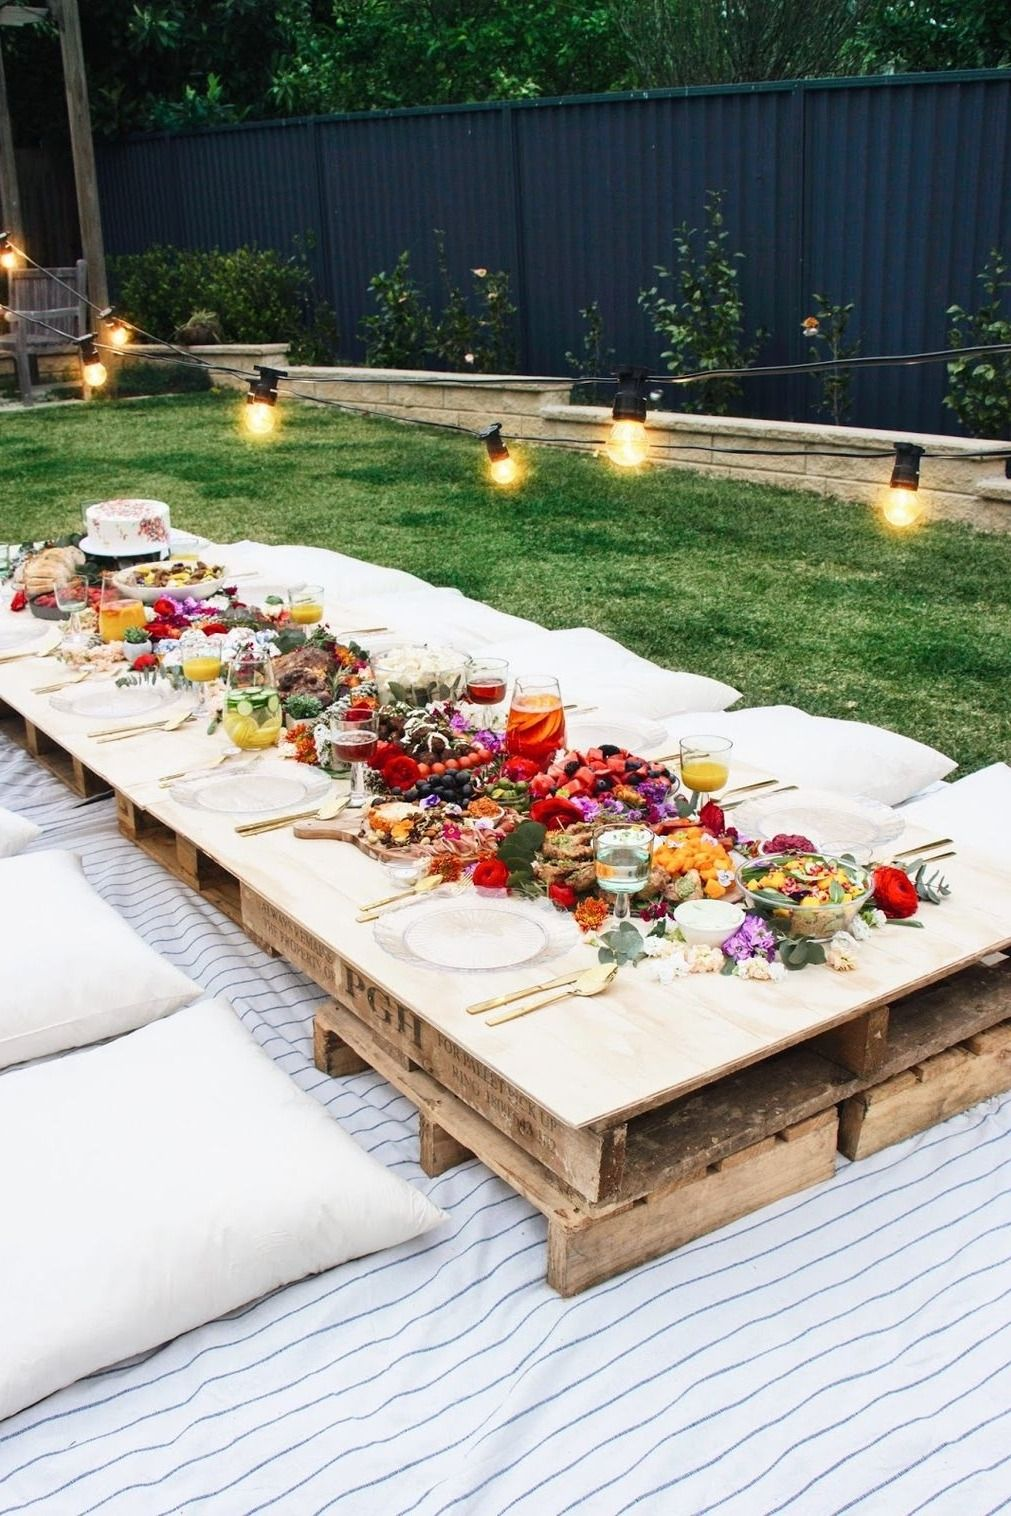 Here Are Some Fashion Girl Approved Ways To Throw Your Own Chic Party!